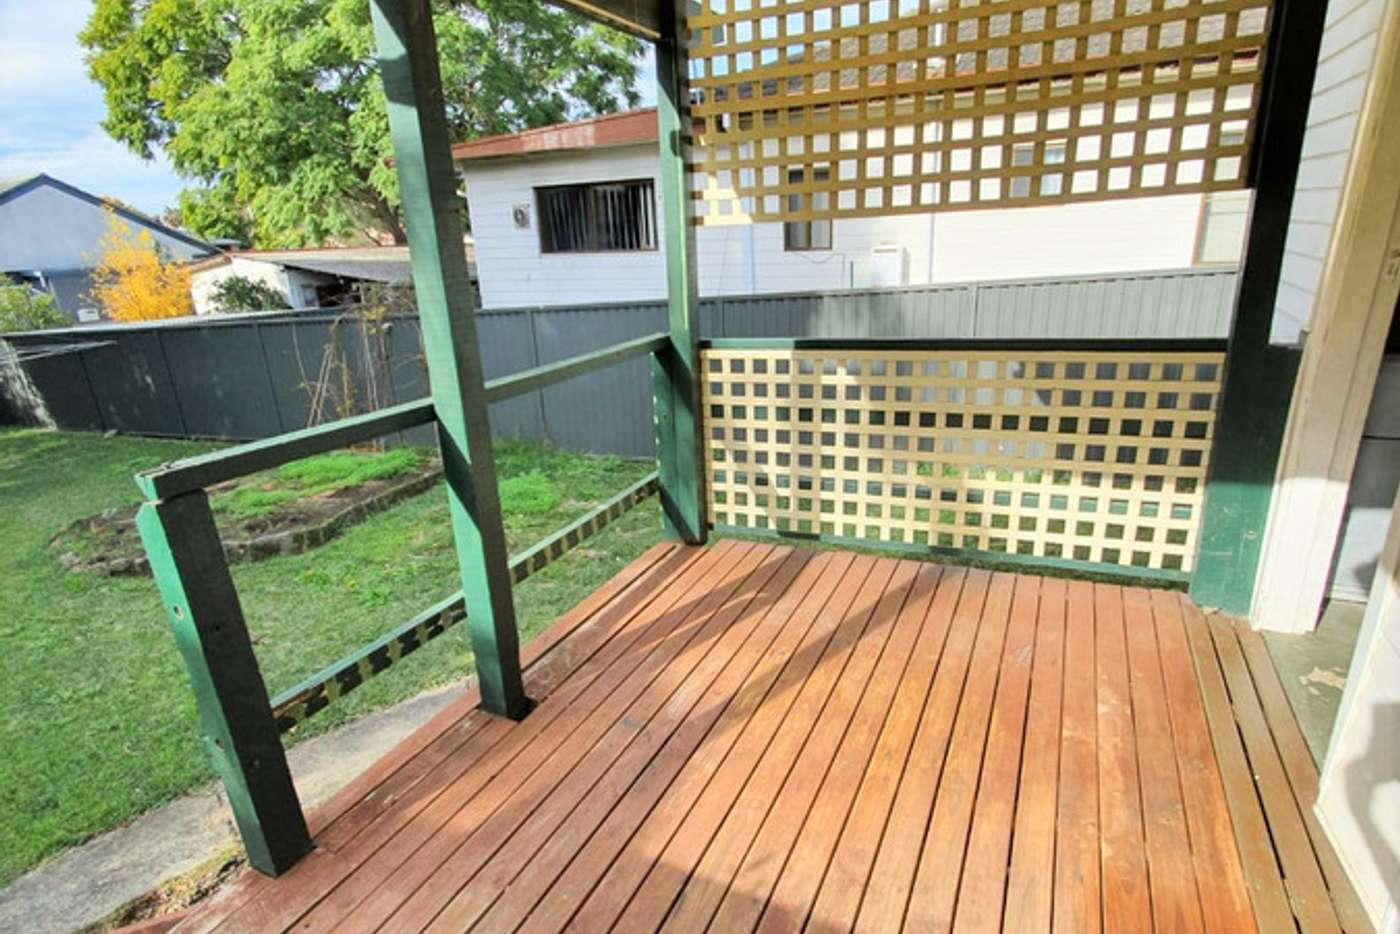 Main view of Homely house listing, 3 Marilyn Street, North Ryde NSW 2113